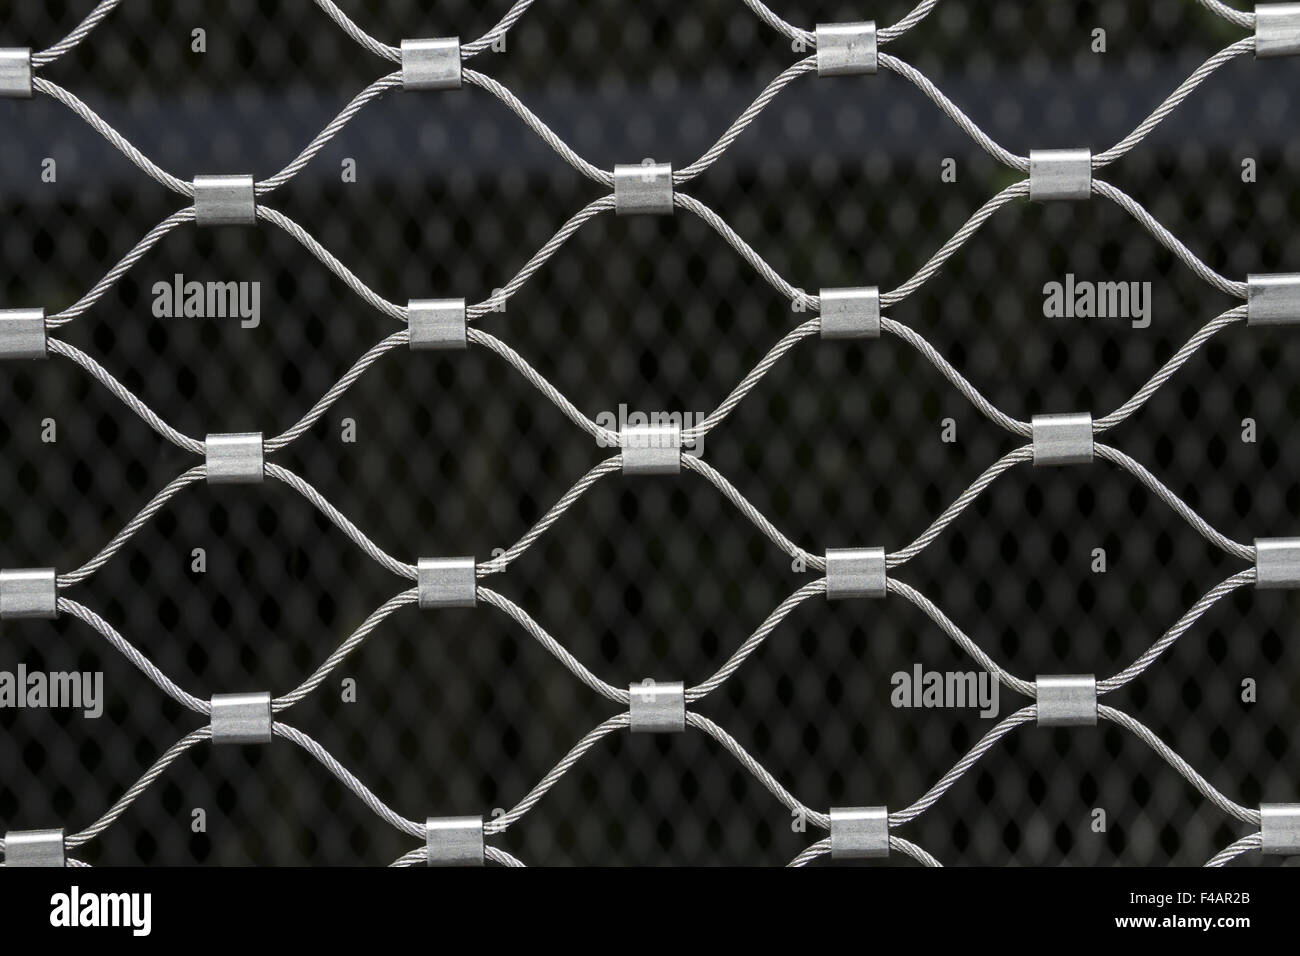 Rope And Metal ^fence Stockfotos & Rope And Metal ^fence Bilder - Alamy